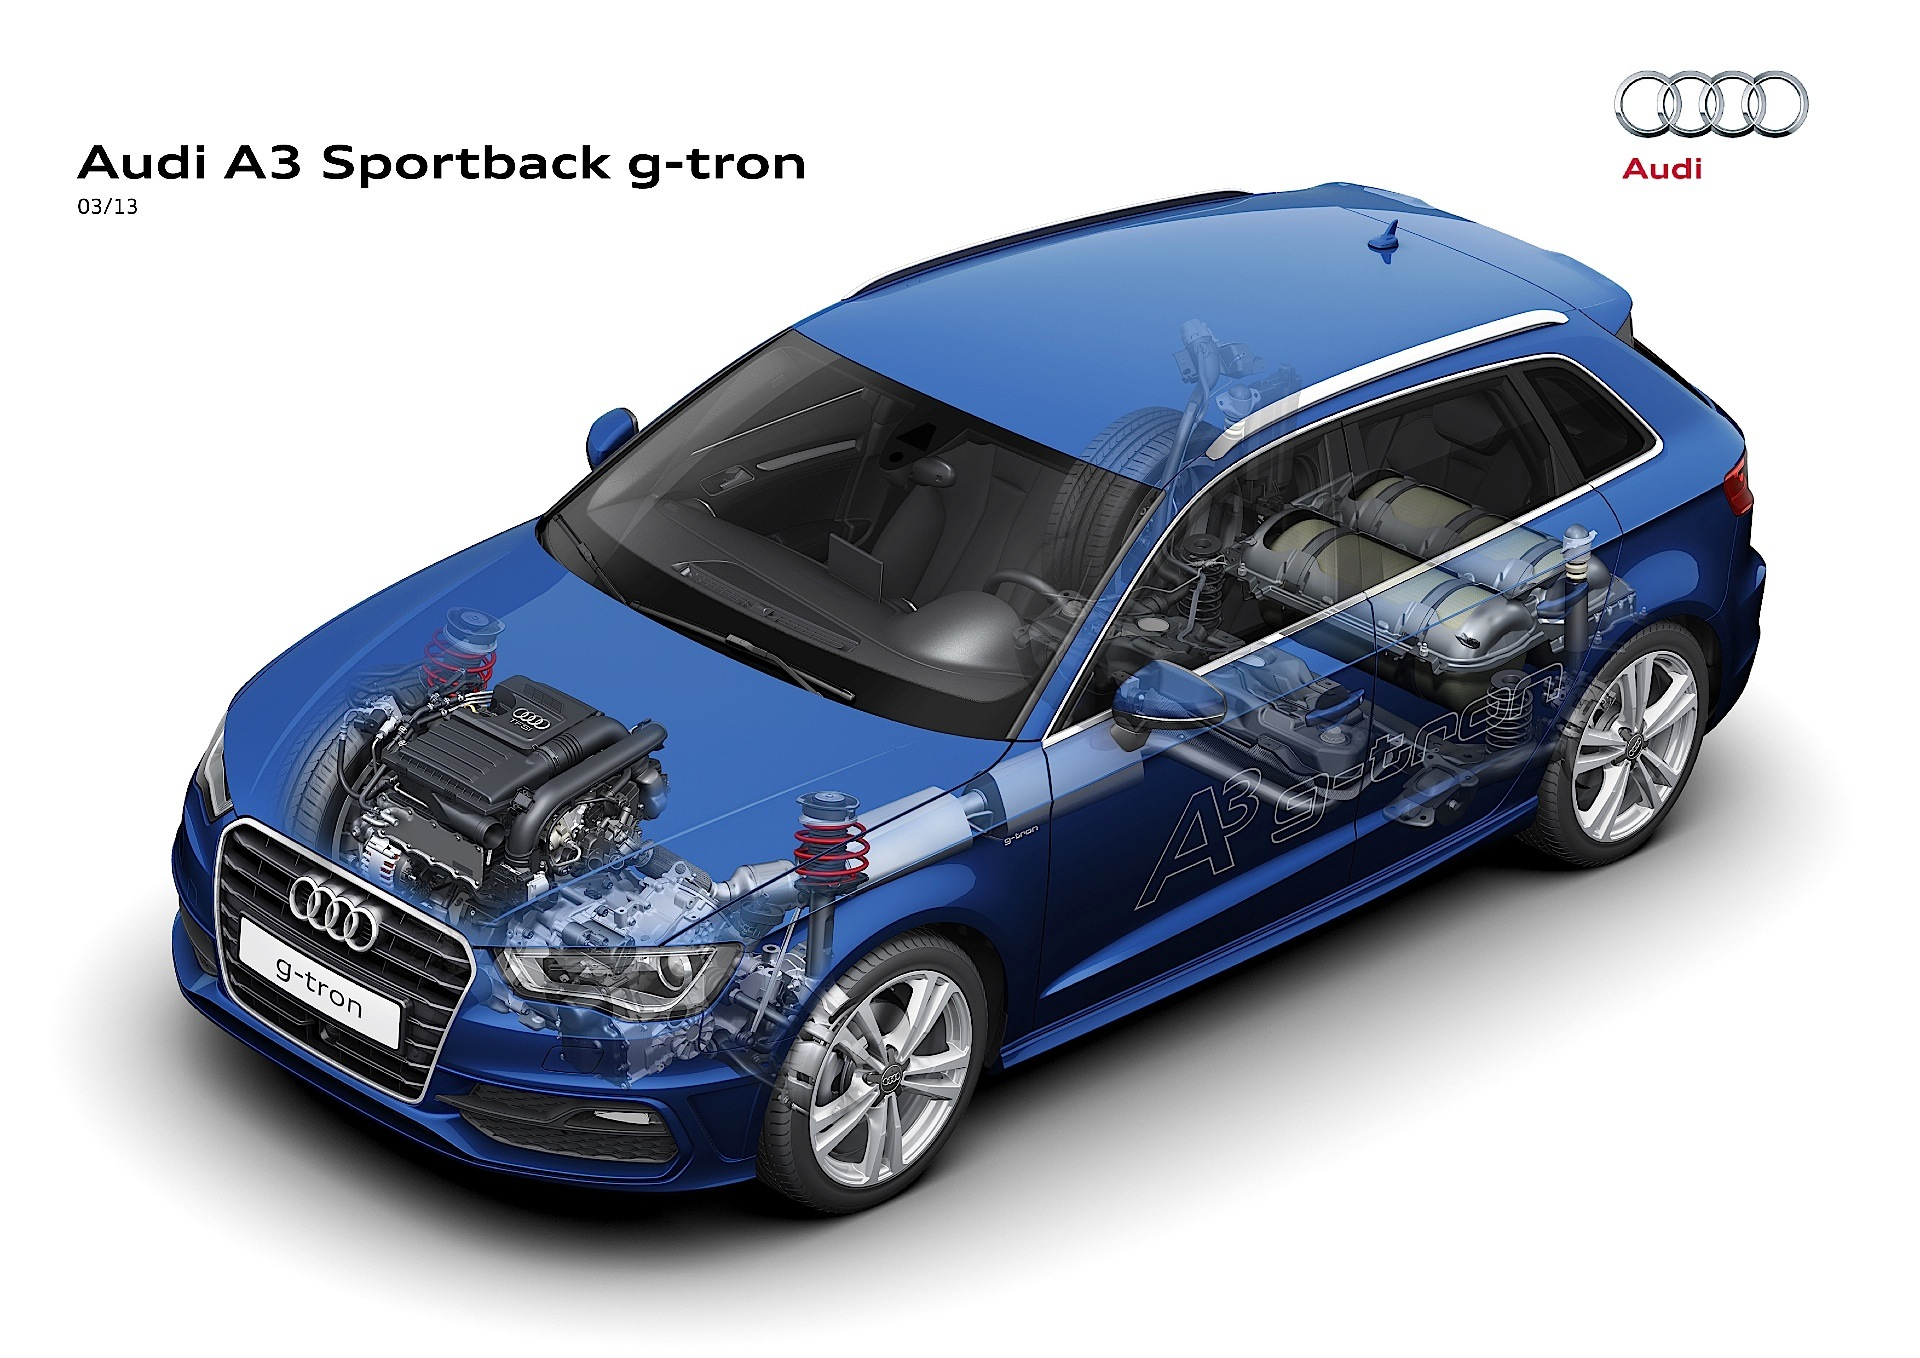 audi a3 sportback g tron specs 2013 2014 2015 2016. Black Bedroom Furniture Sets. Home Design Ideas